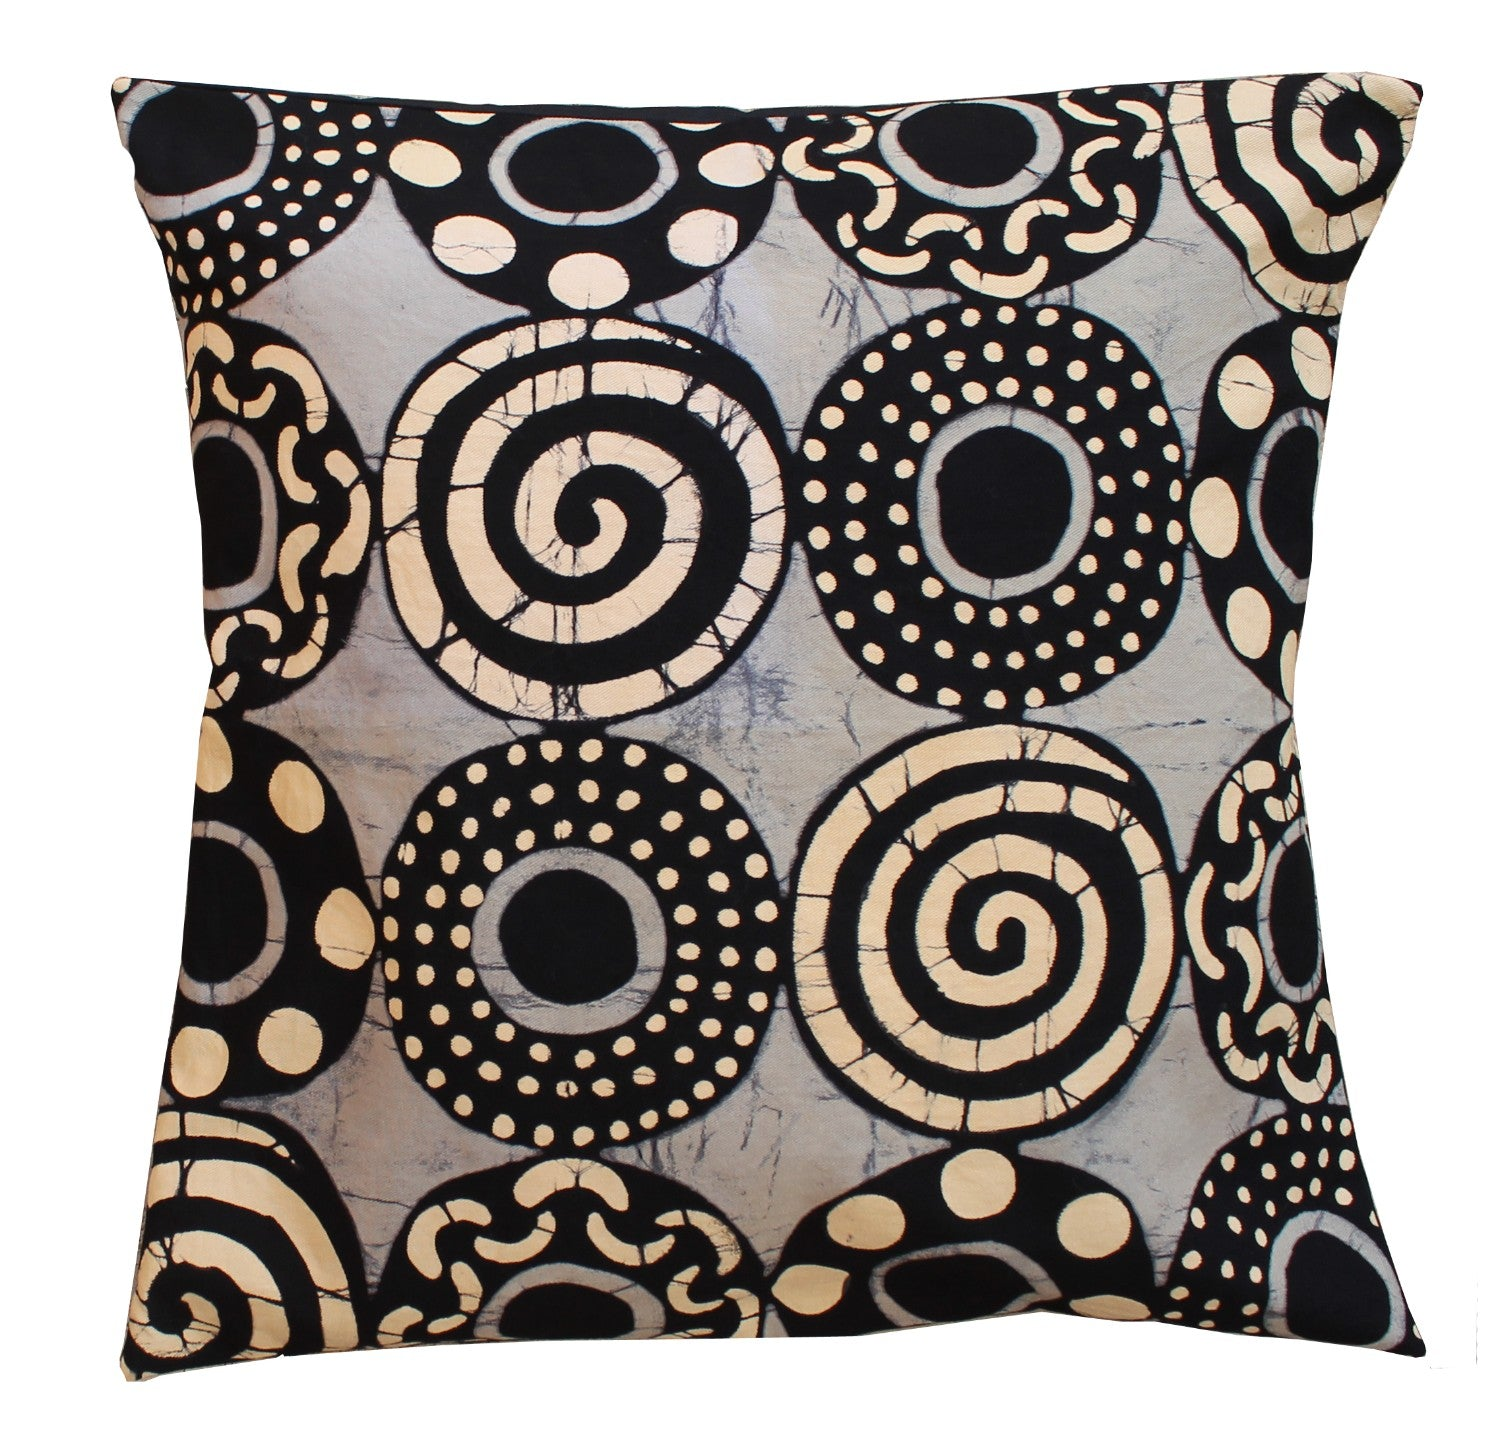 Throw Pillow Cover - No Sun Circles & Spirals